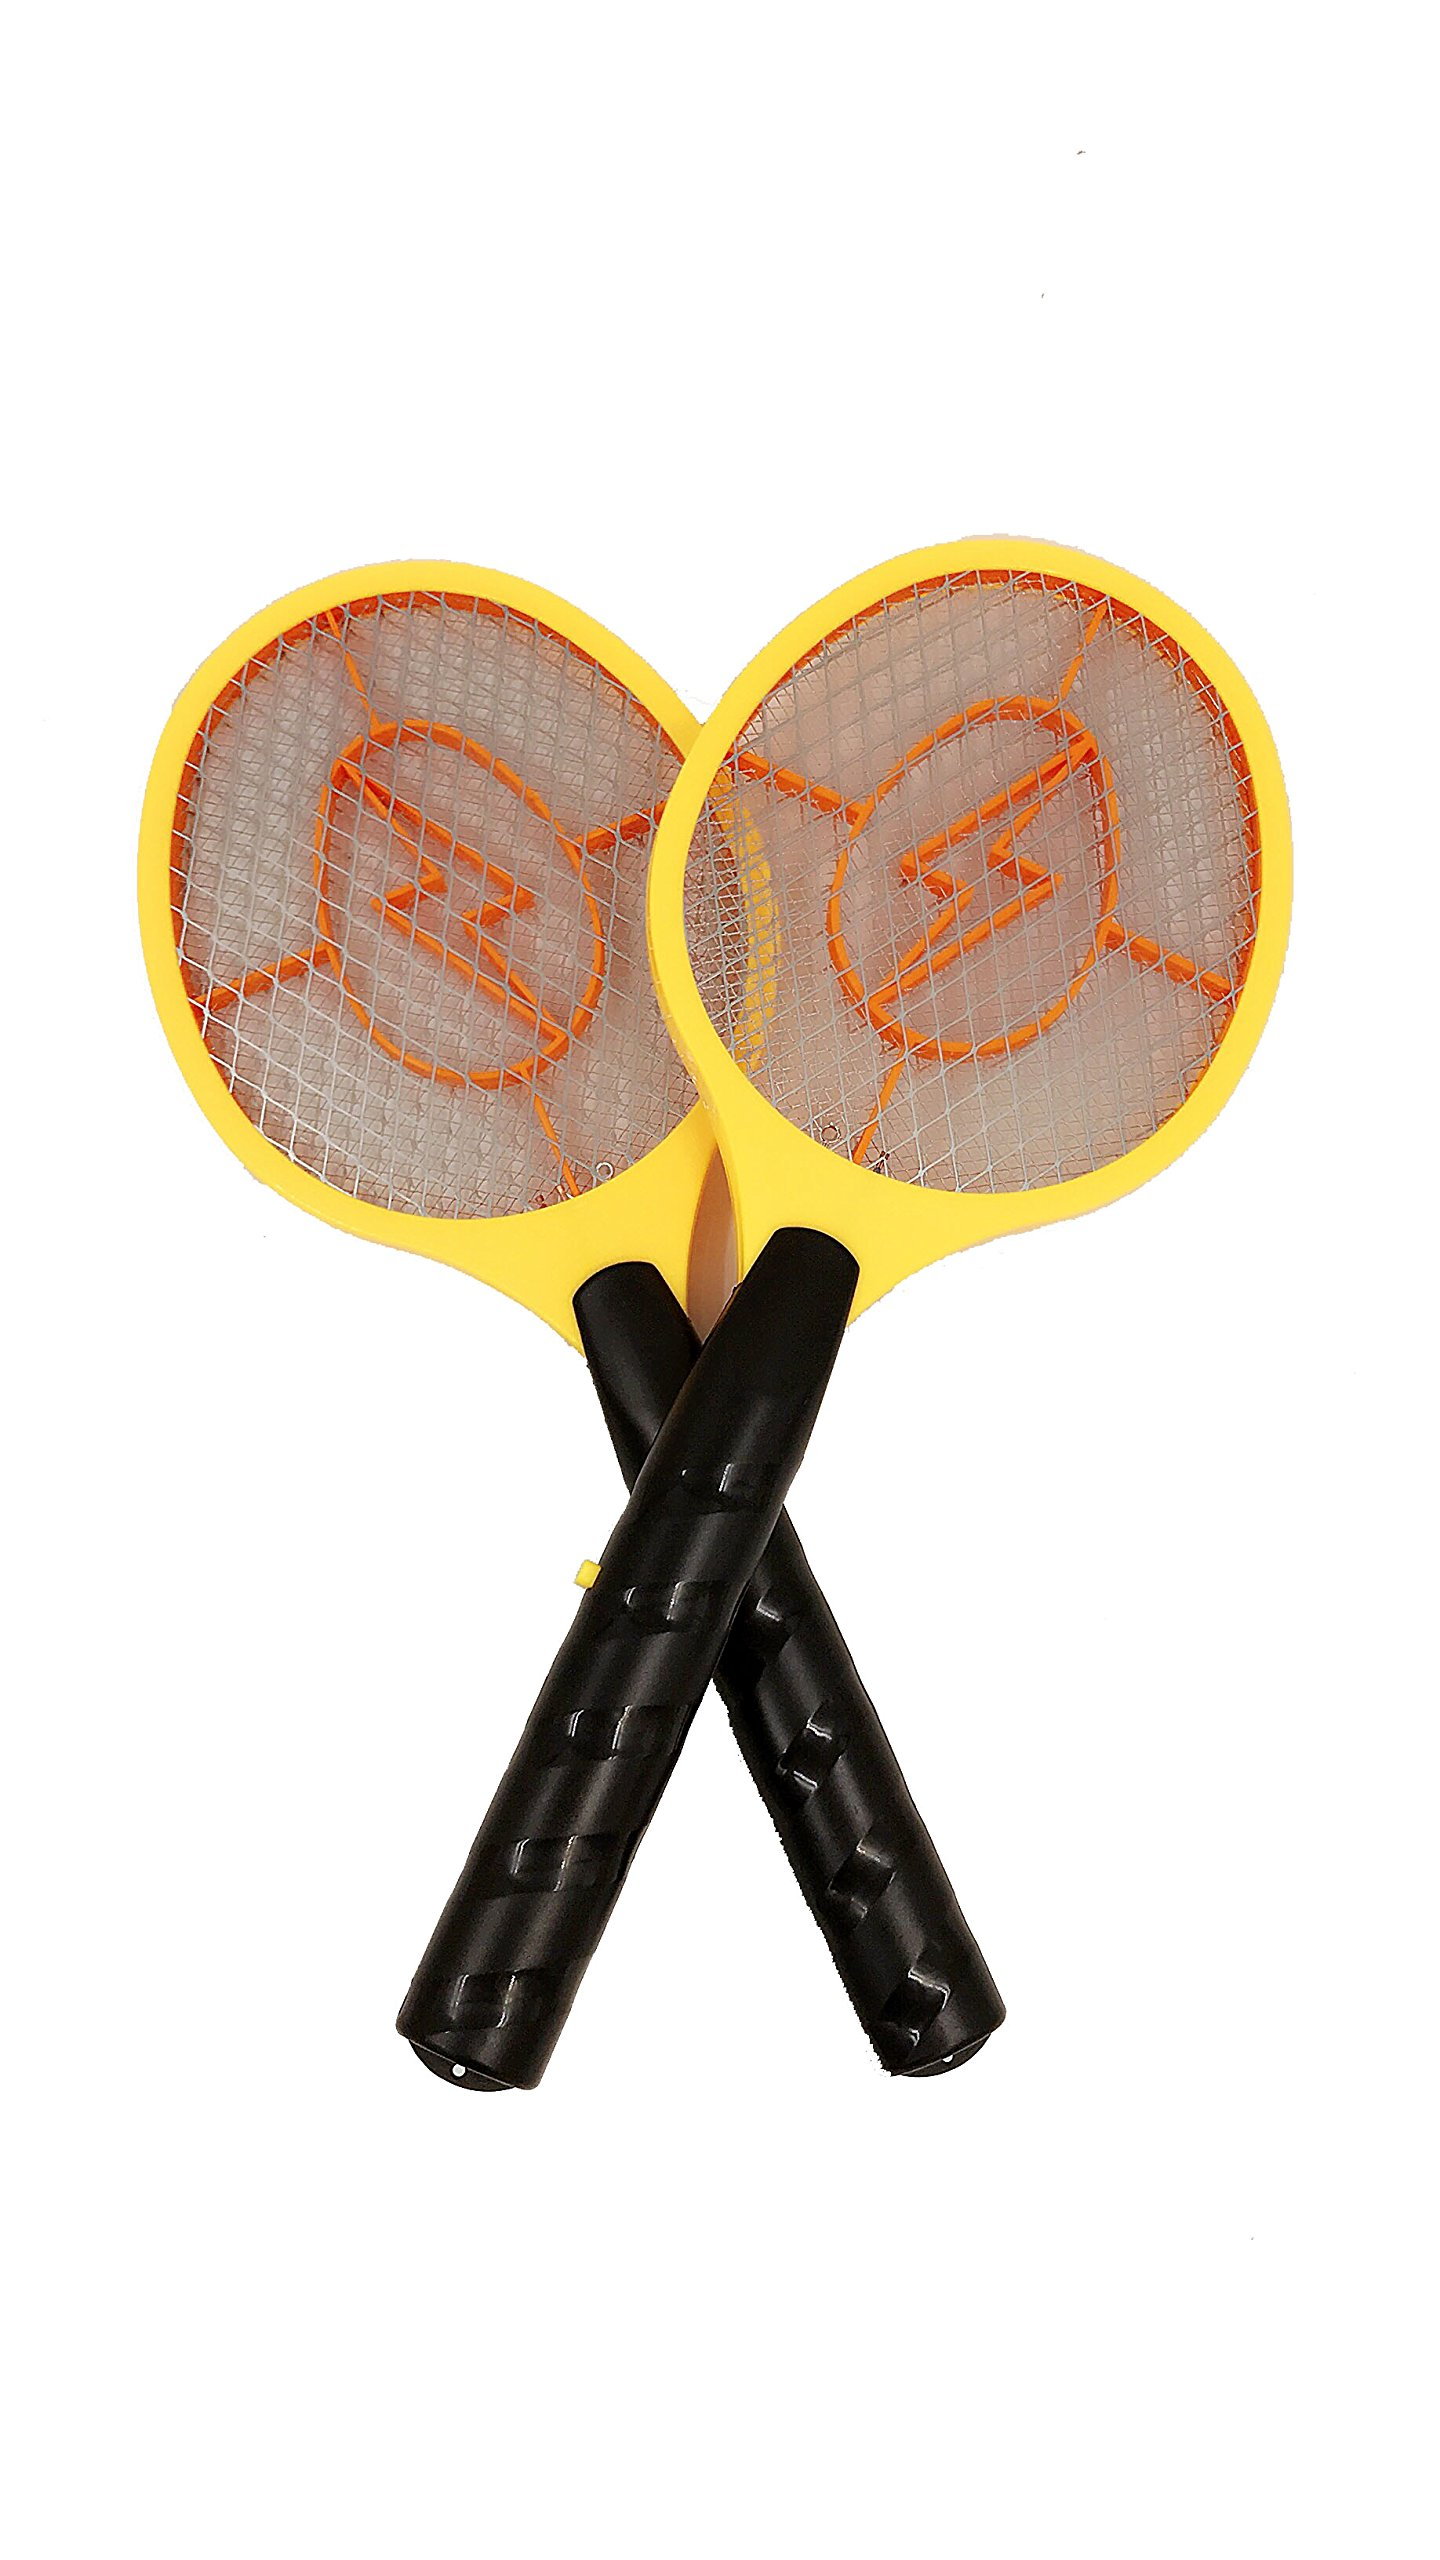 2 PCS of The Amazing Handheld Bug Zapper, Bug Fly Mosquito Zapper Swatter Killer by TruePower (Image #2)